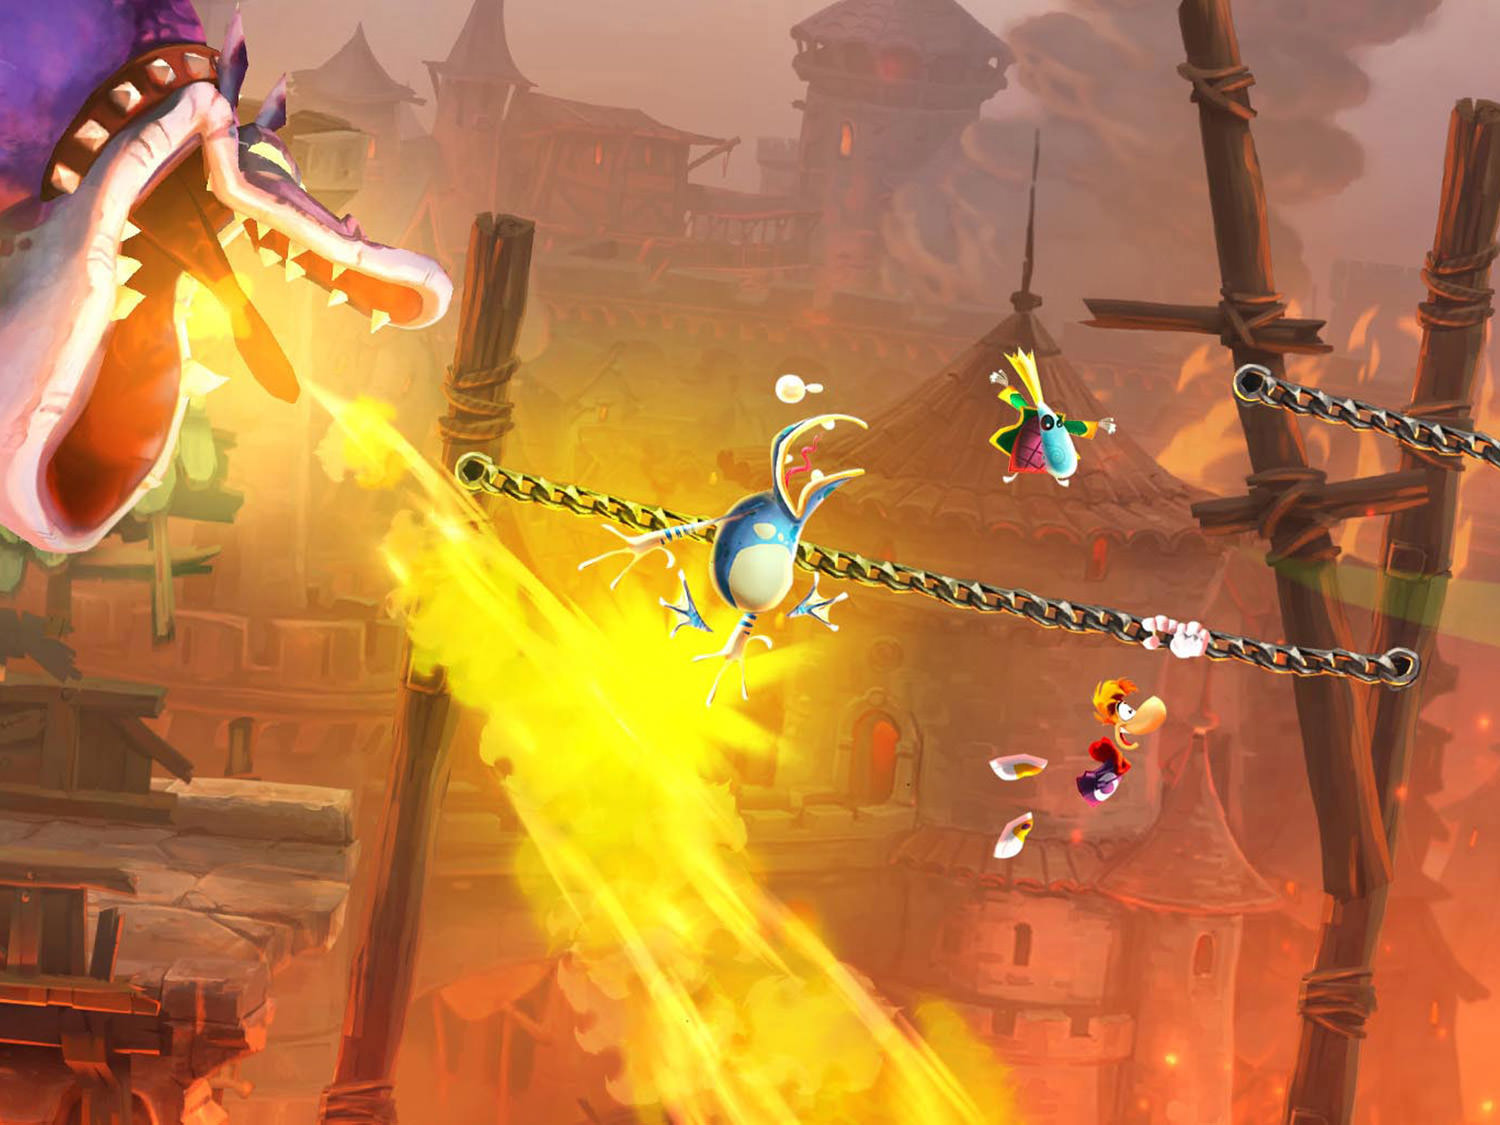 Rayman Legends Game Screen 2 wallpaper